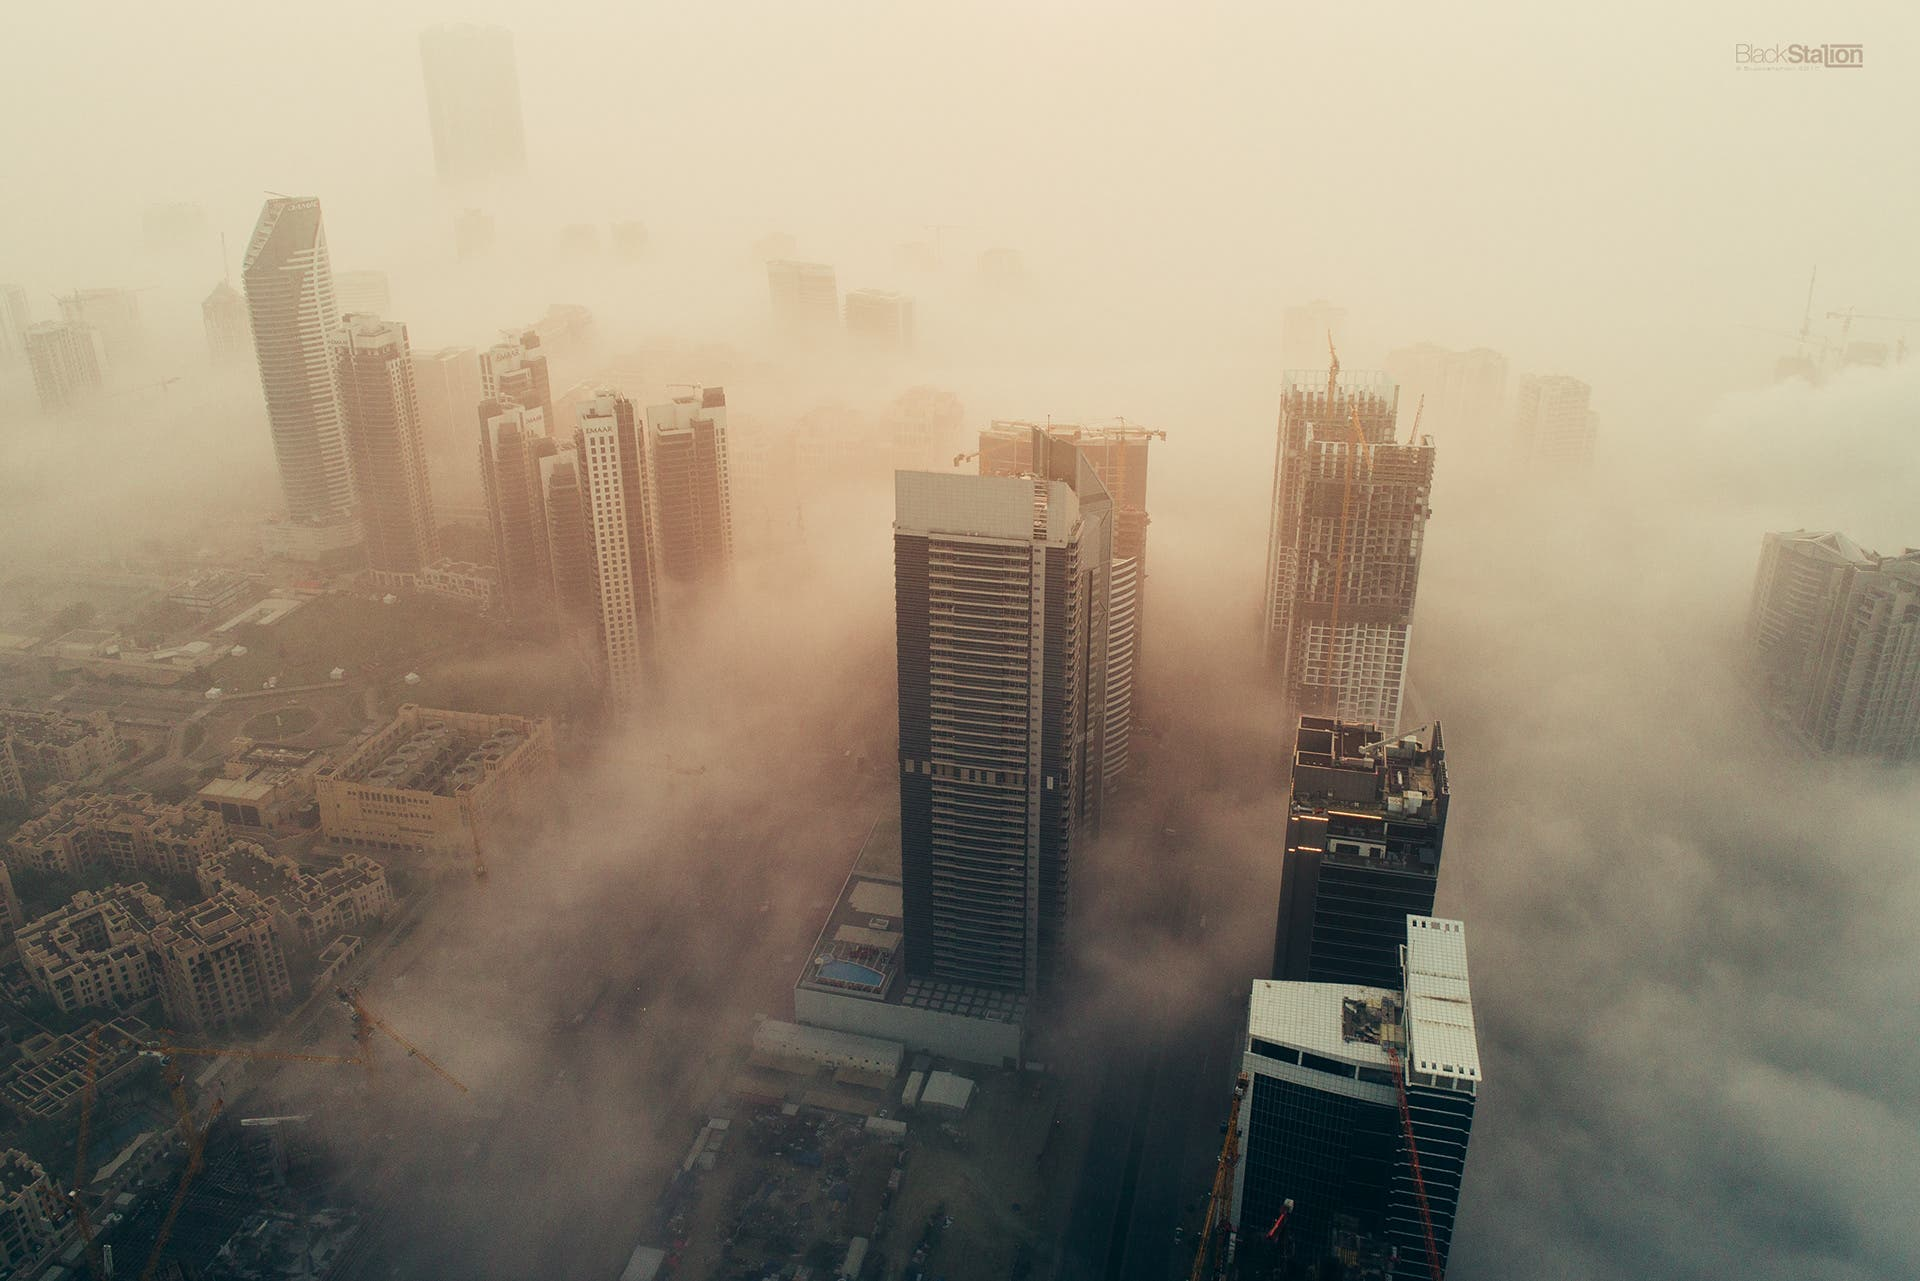 Black Station's Cityscapes of Dubai in the Fog are Both Eerie and Soothing